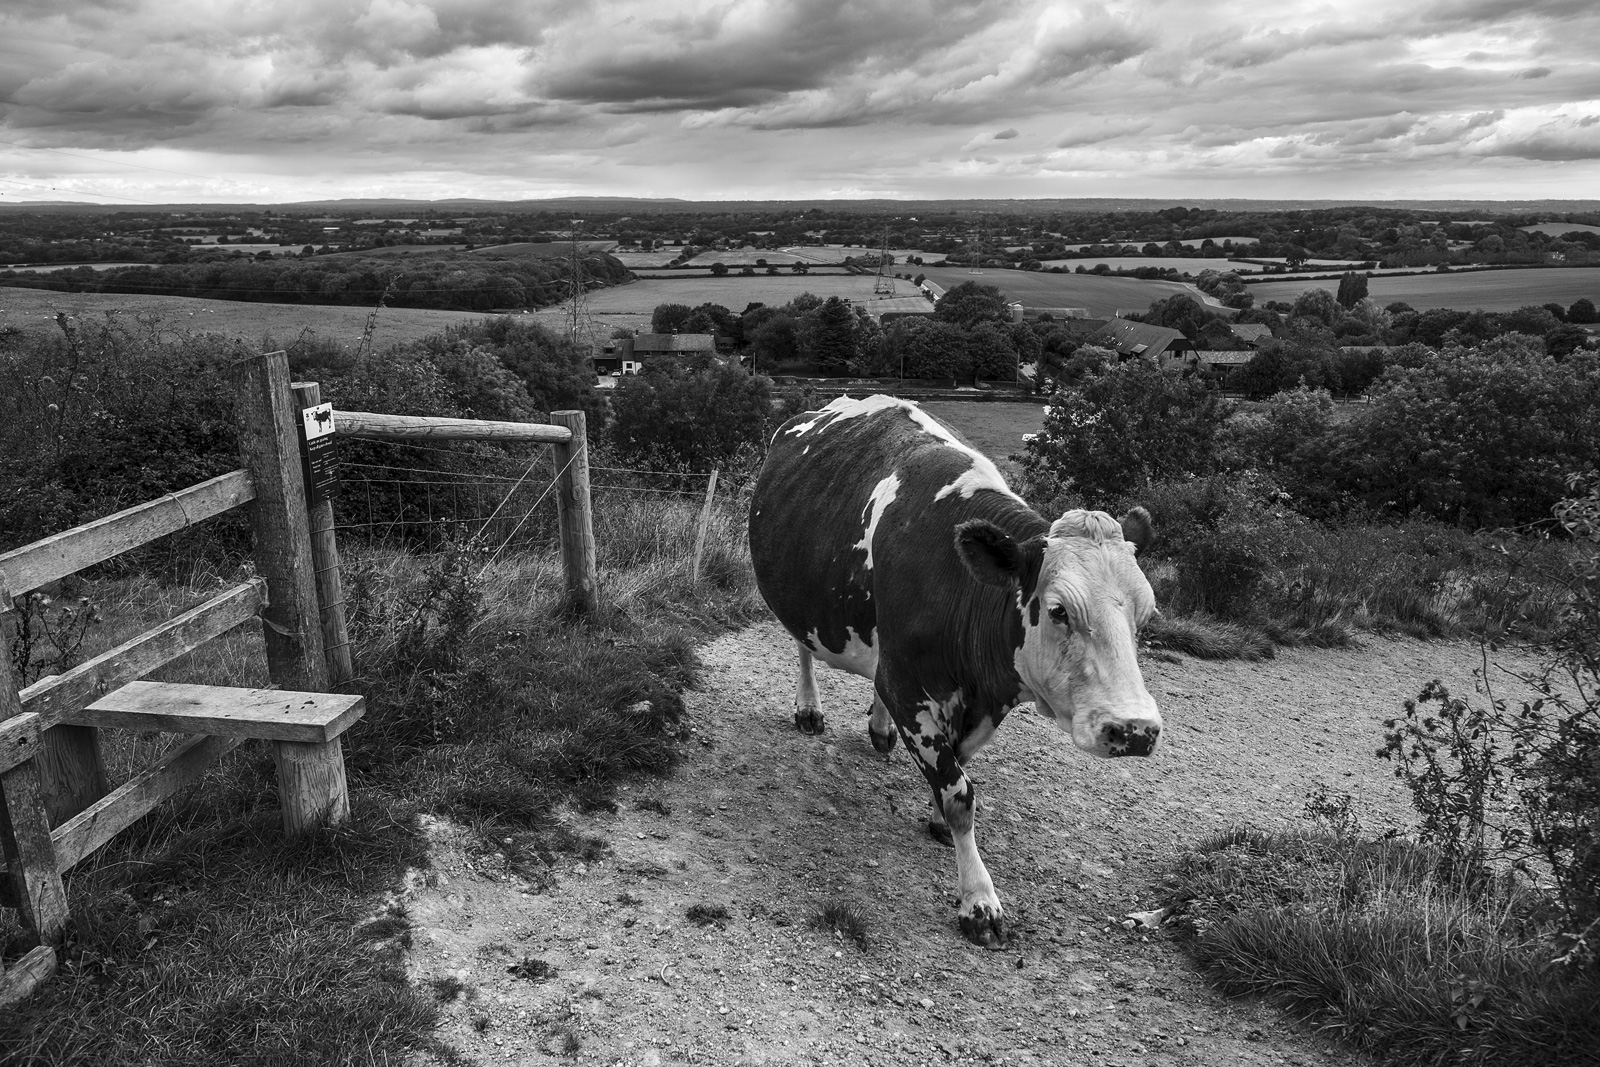 Cow on path next to stile with view over the low weald Edburton Escarpment West Sussex UK Black and white portrait rural landscape photography ©P. Maton 2018 eyeteeth.net